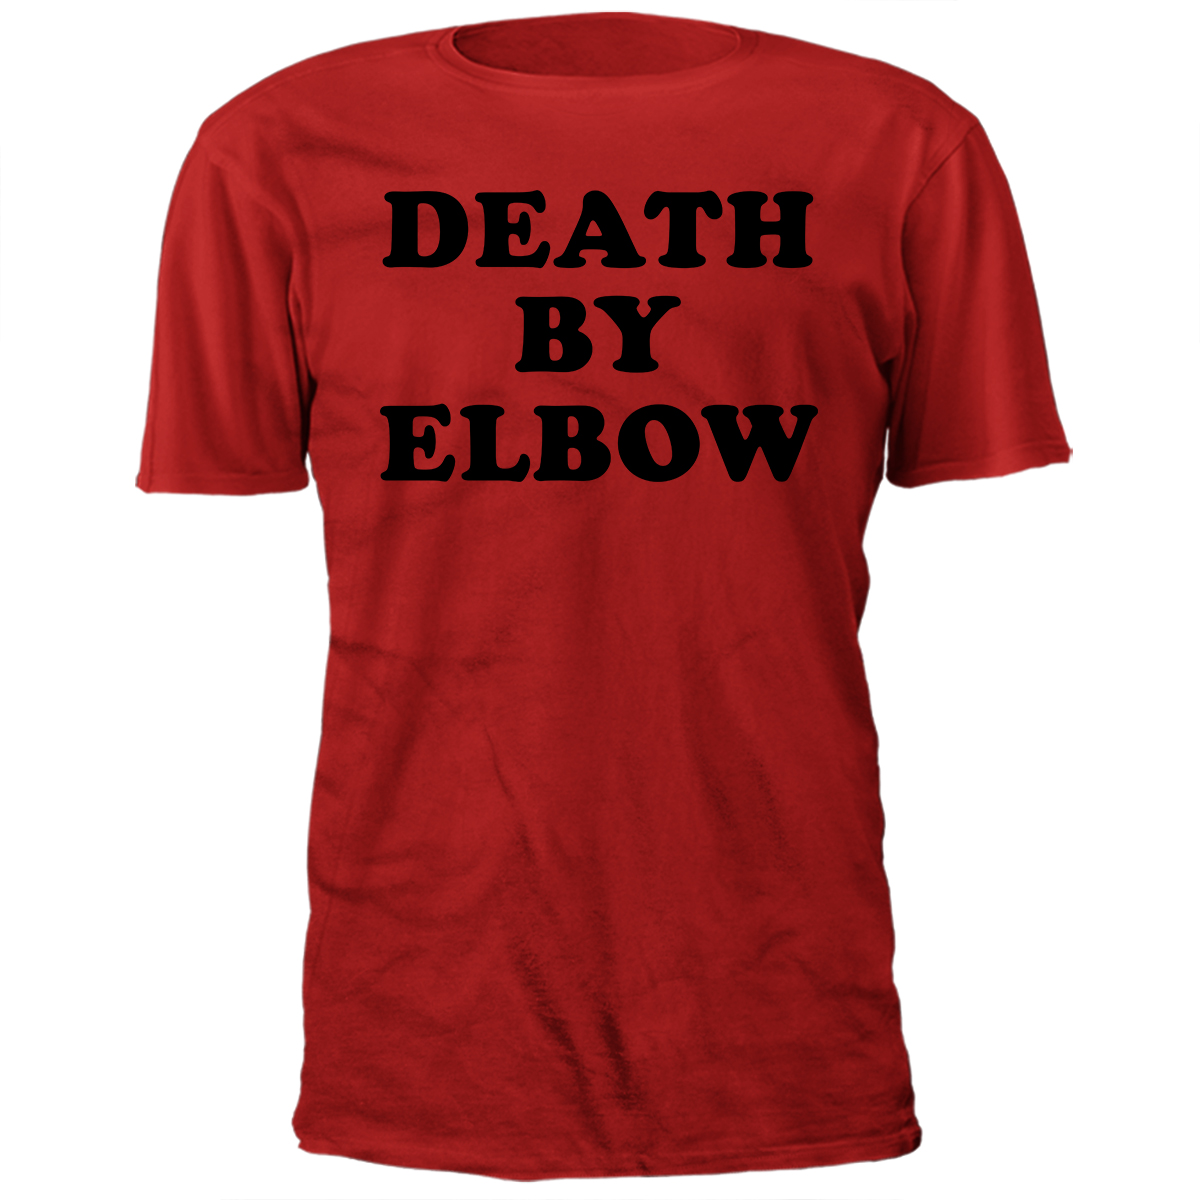 Chris Hero Death By Elbow T-shirt